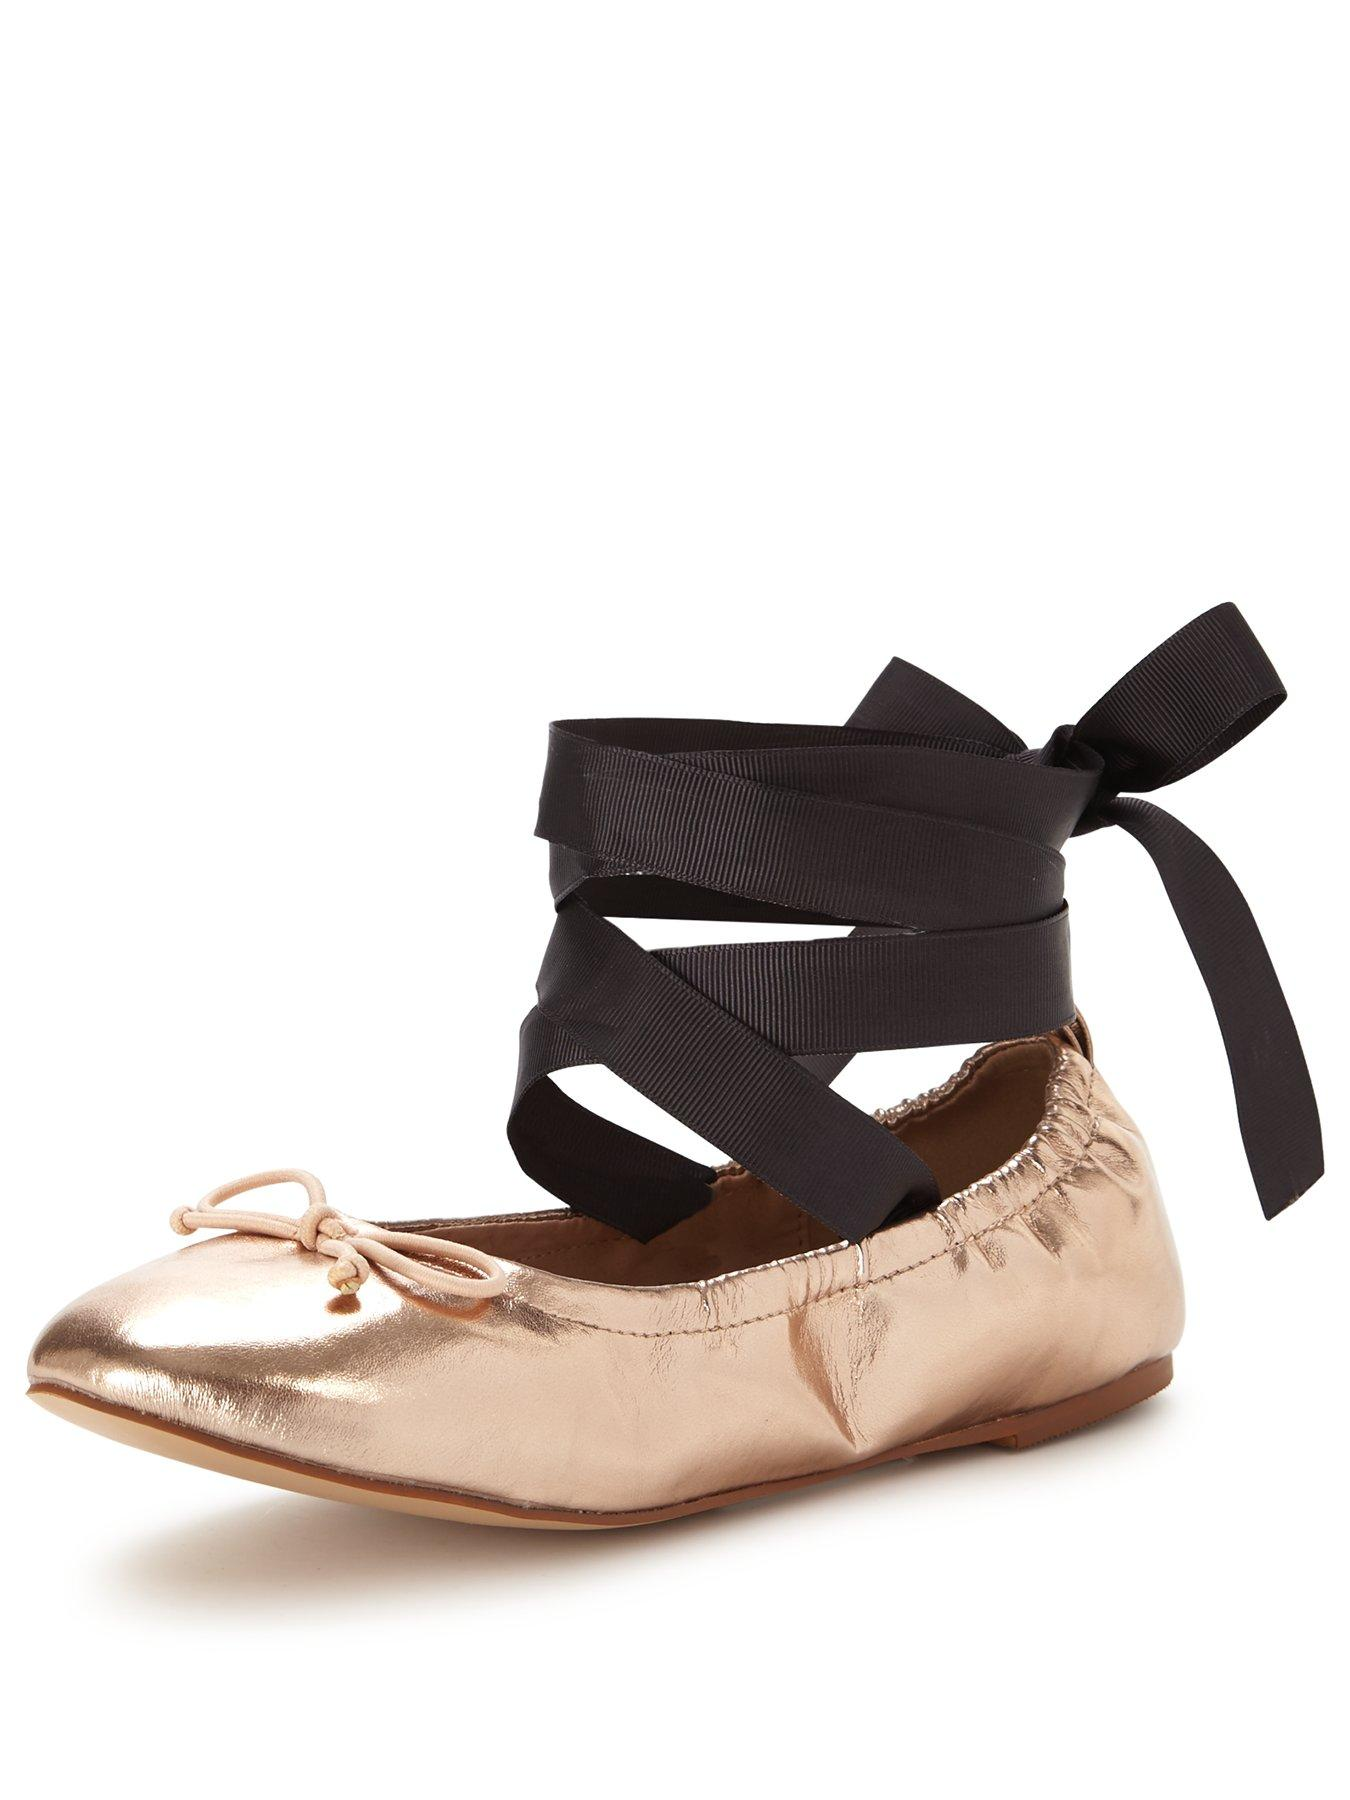 Discount V by Very Bluebell Tie Around Rose Gold Ballerinas for Women On Sale